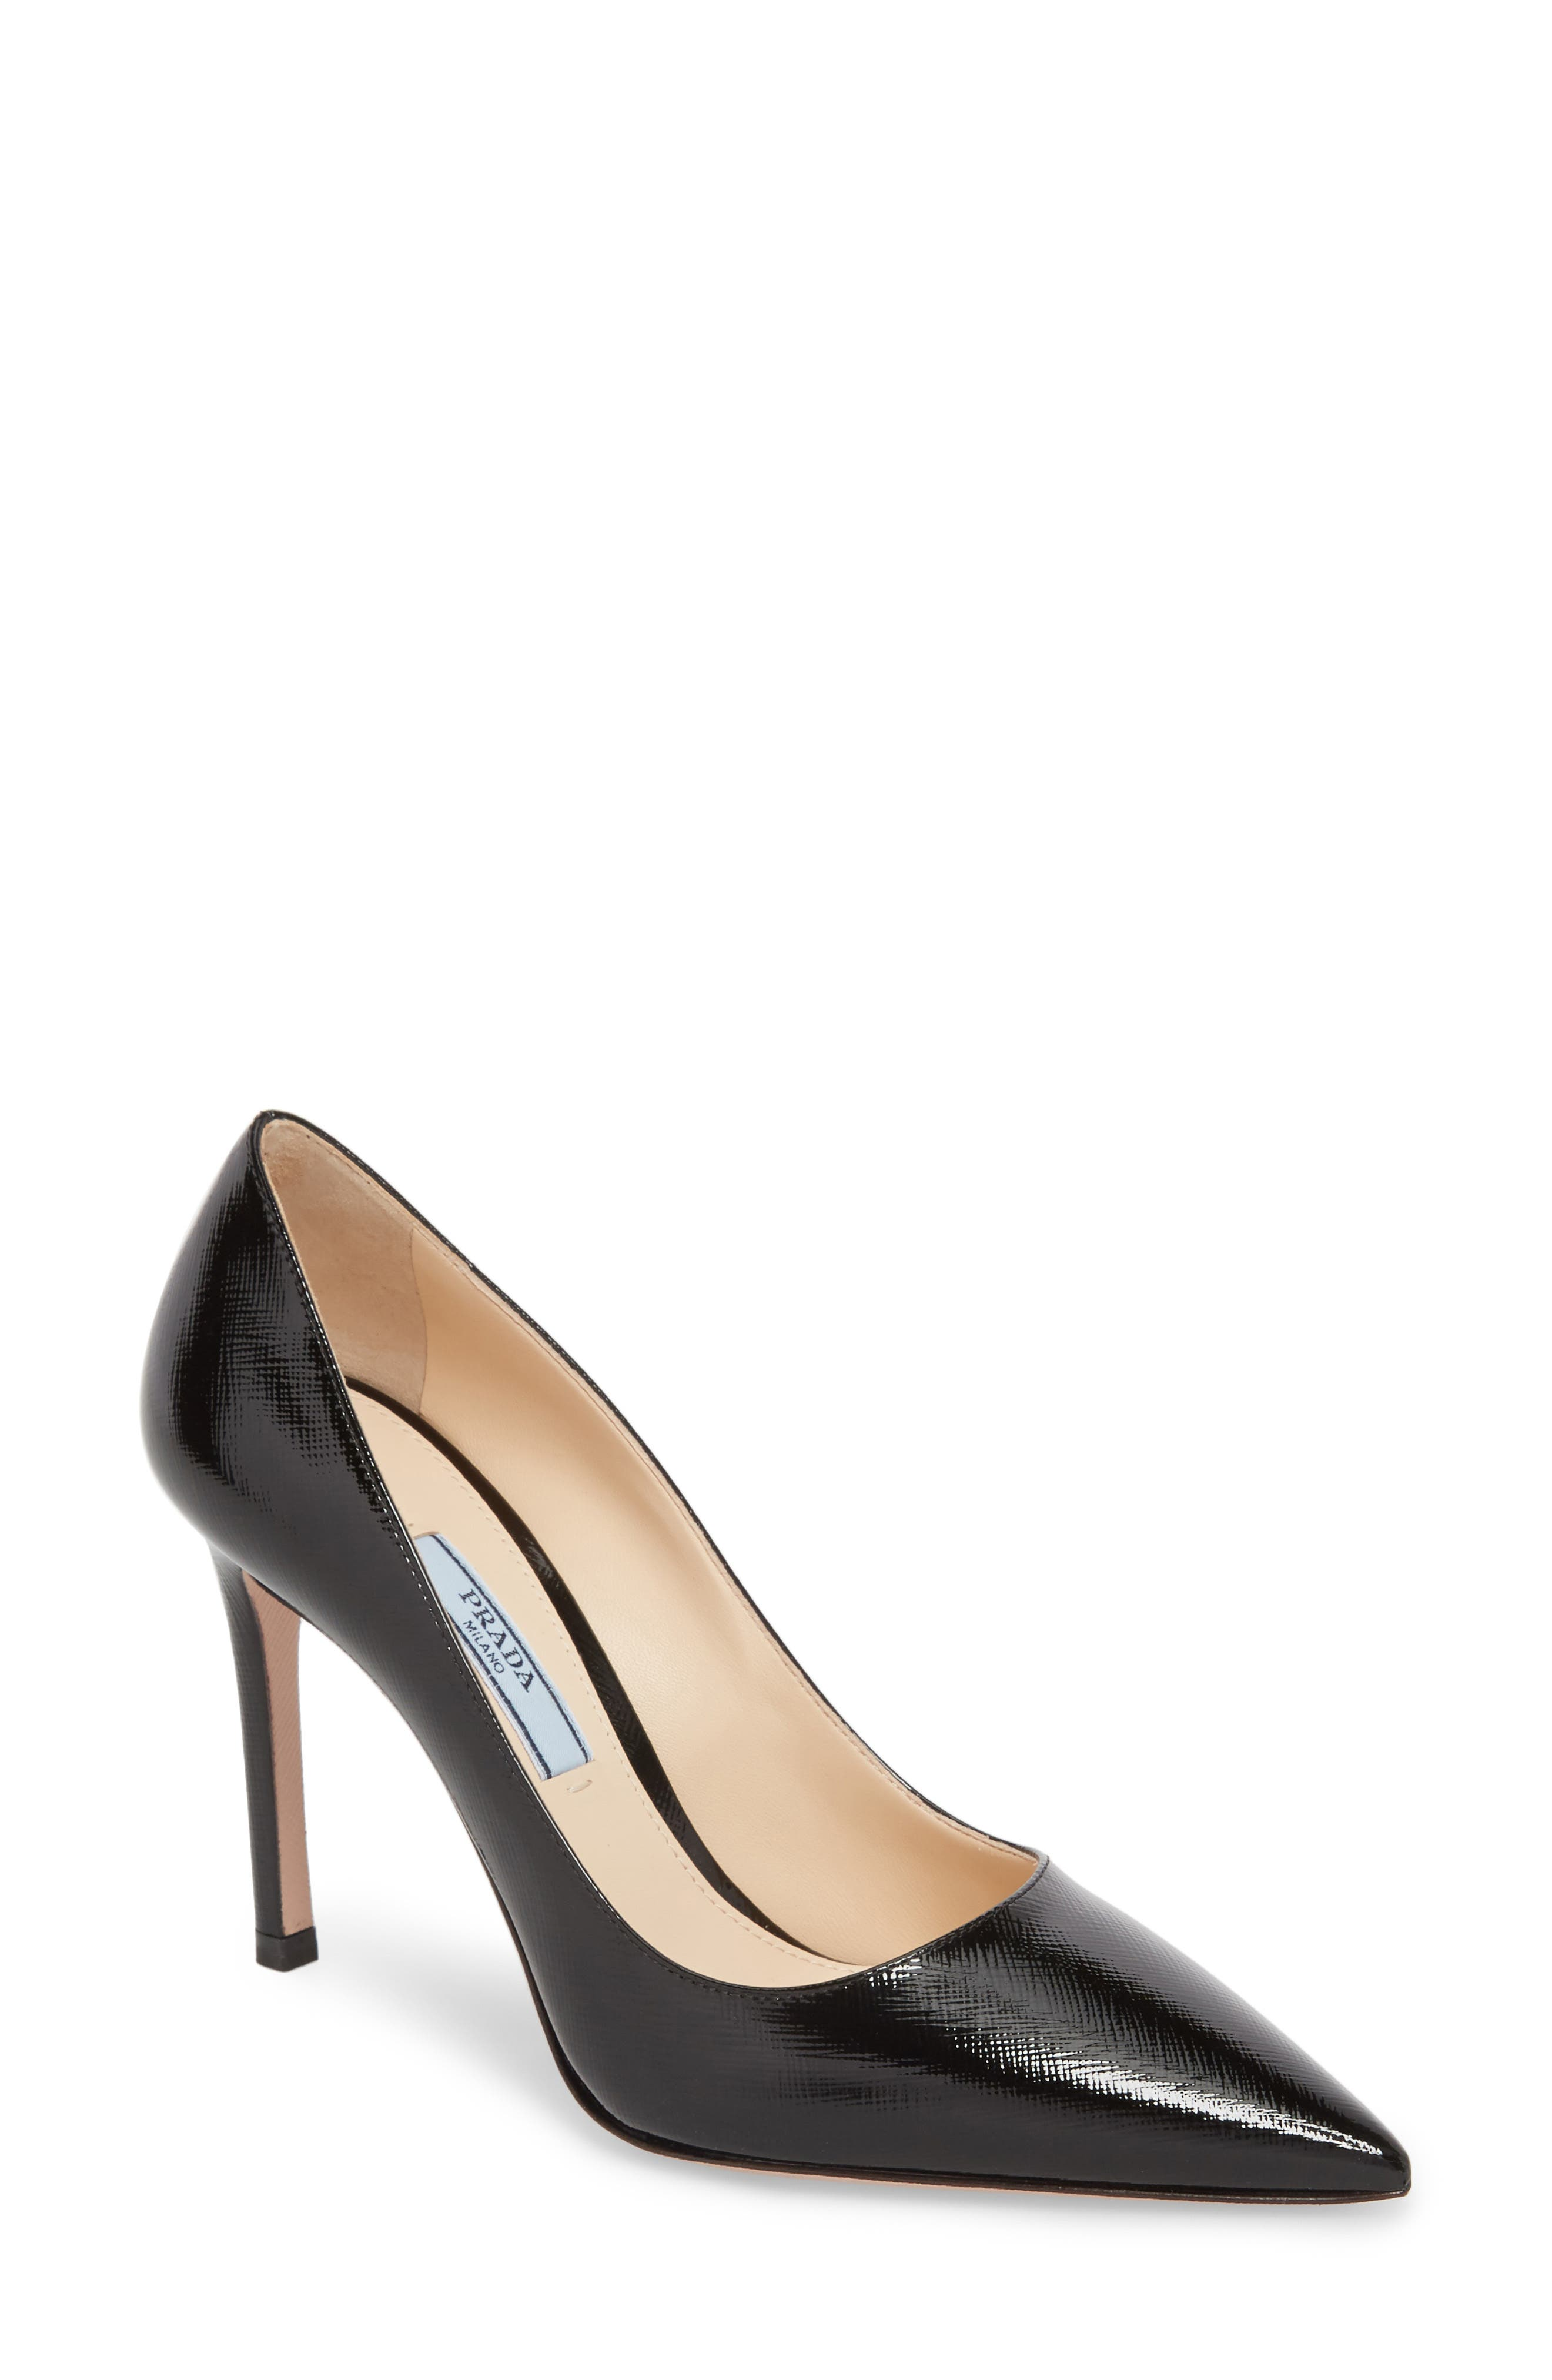 PRADA, Pointy Toe Pump, Main thumbnail 1, color, BLACK